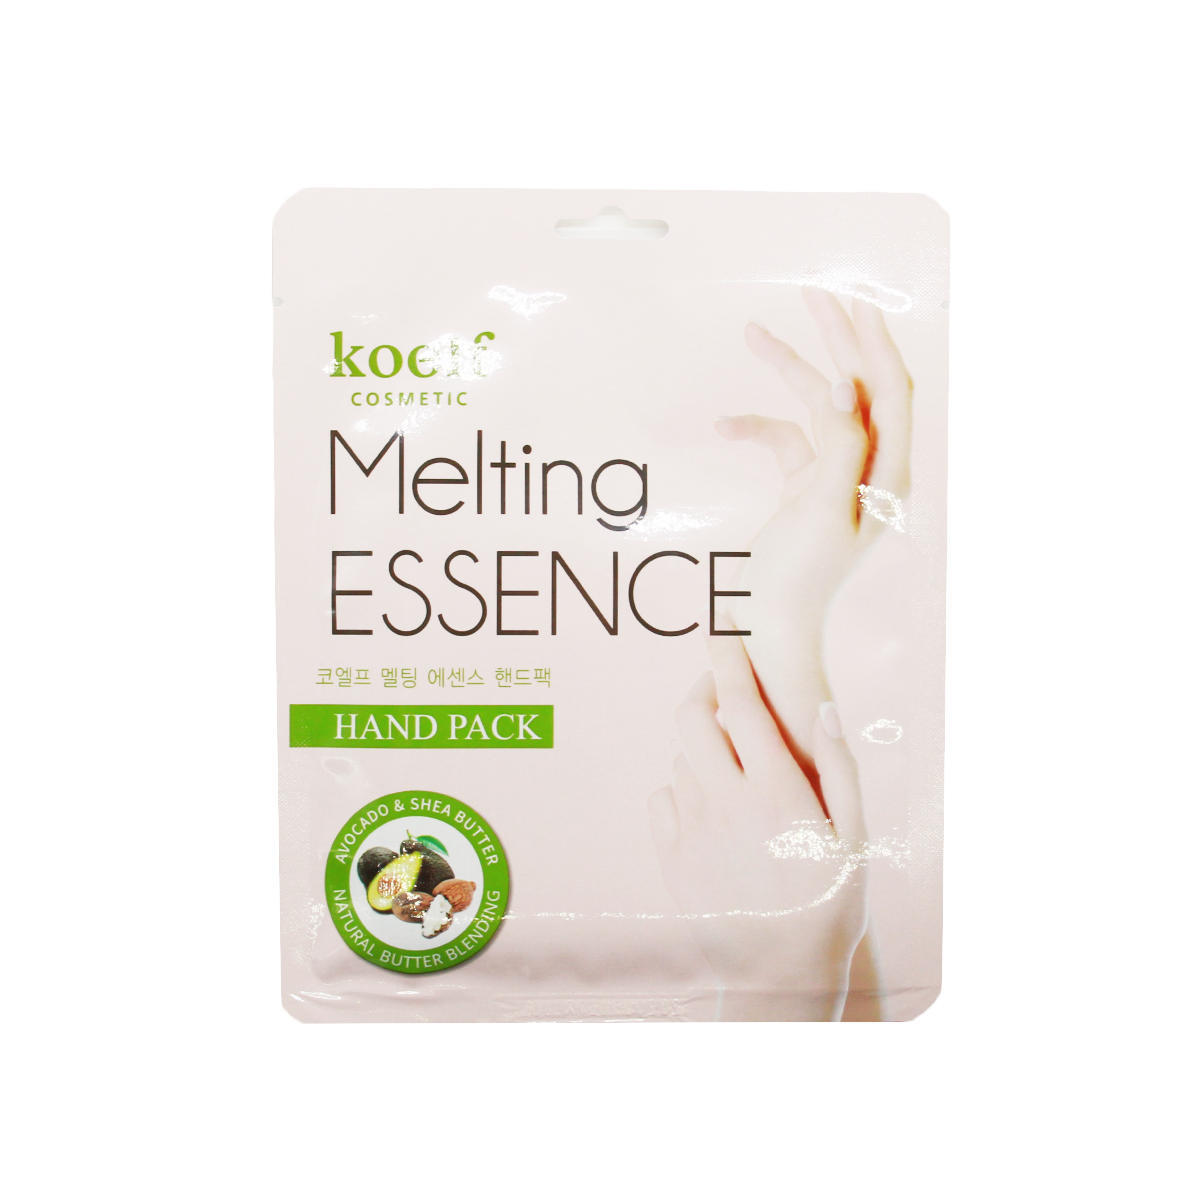 Уход за телом Маска для рук Koelf Melting Essence Hand Pack, 14 мл import_files_65_65ba06d75a5711e980fb3408042974b1_65ba06d85a5711e980fb3408042974b1.jpg